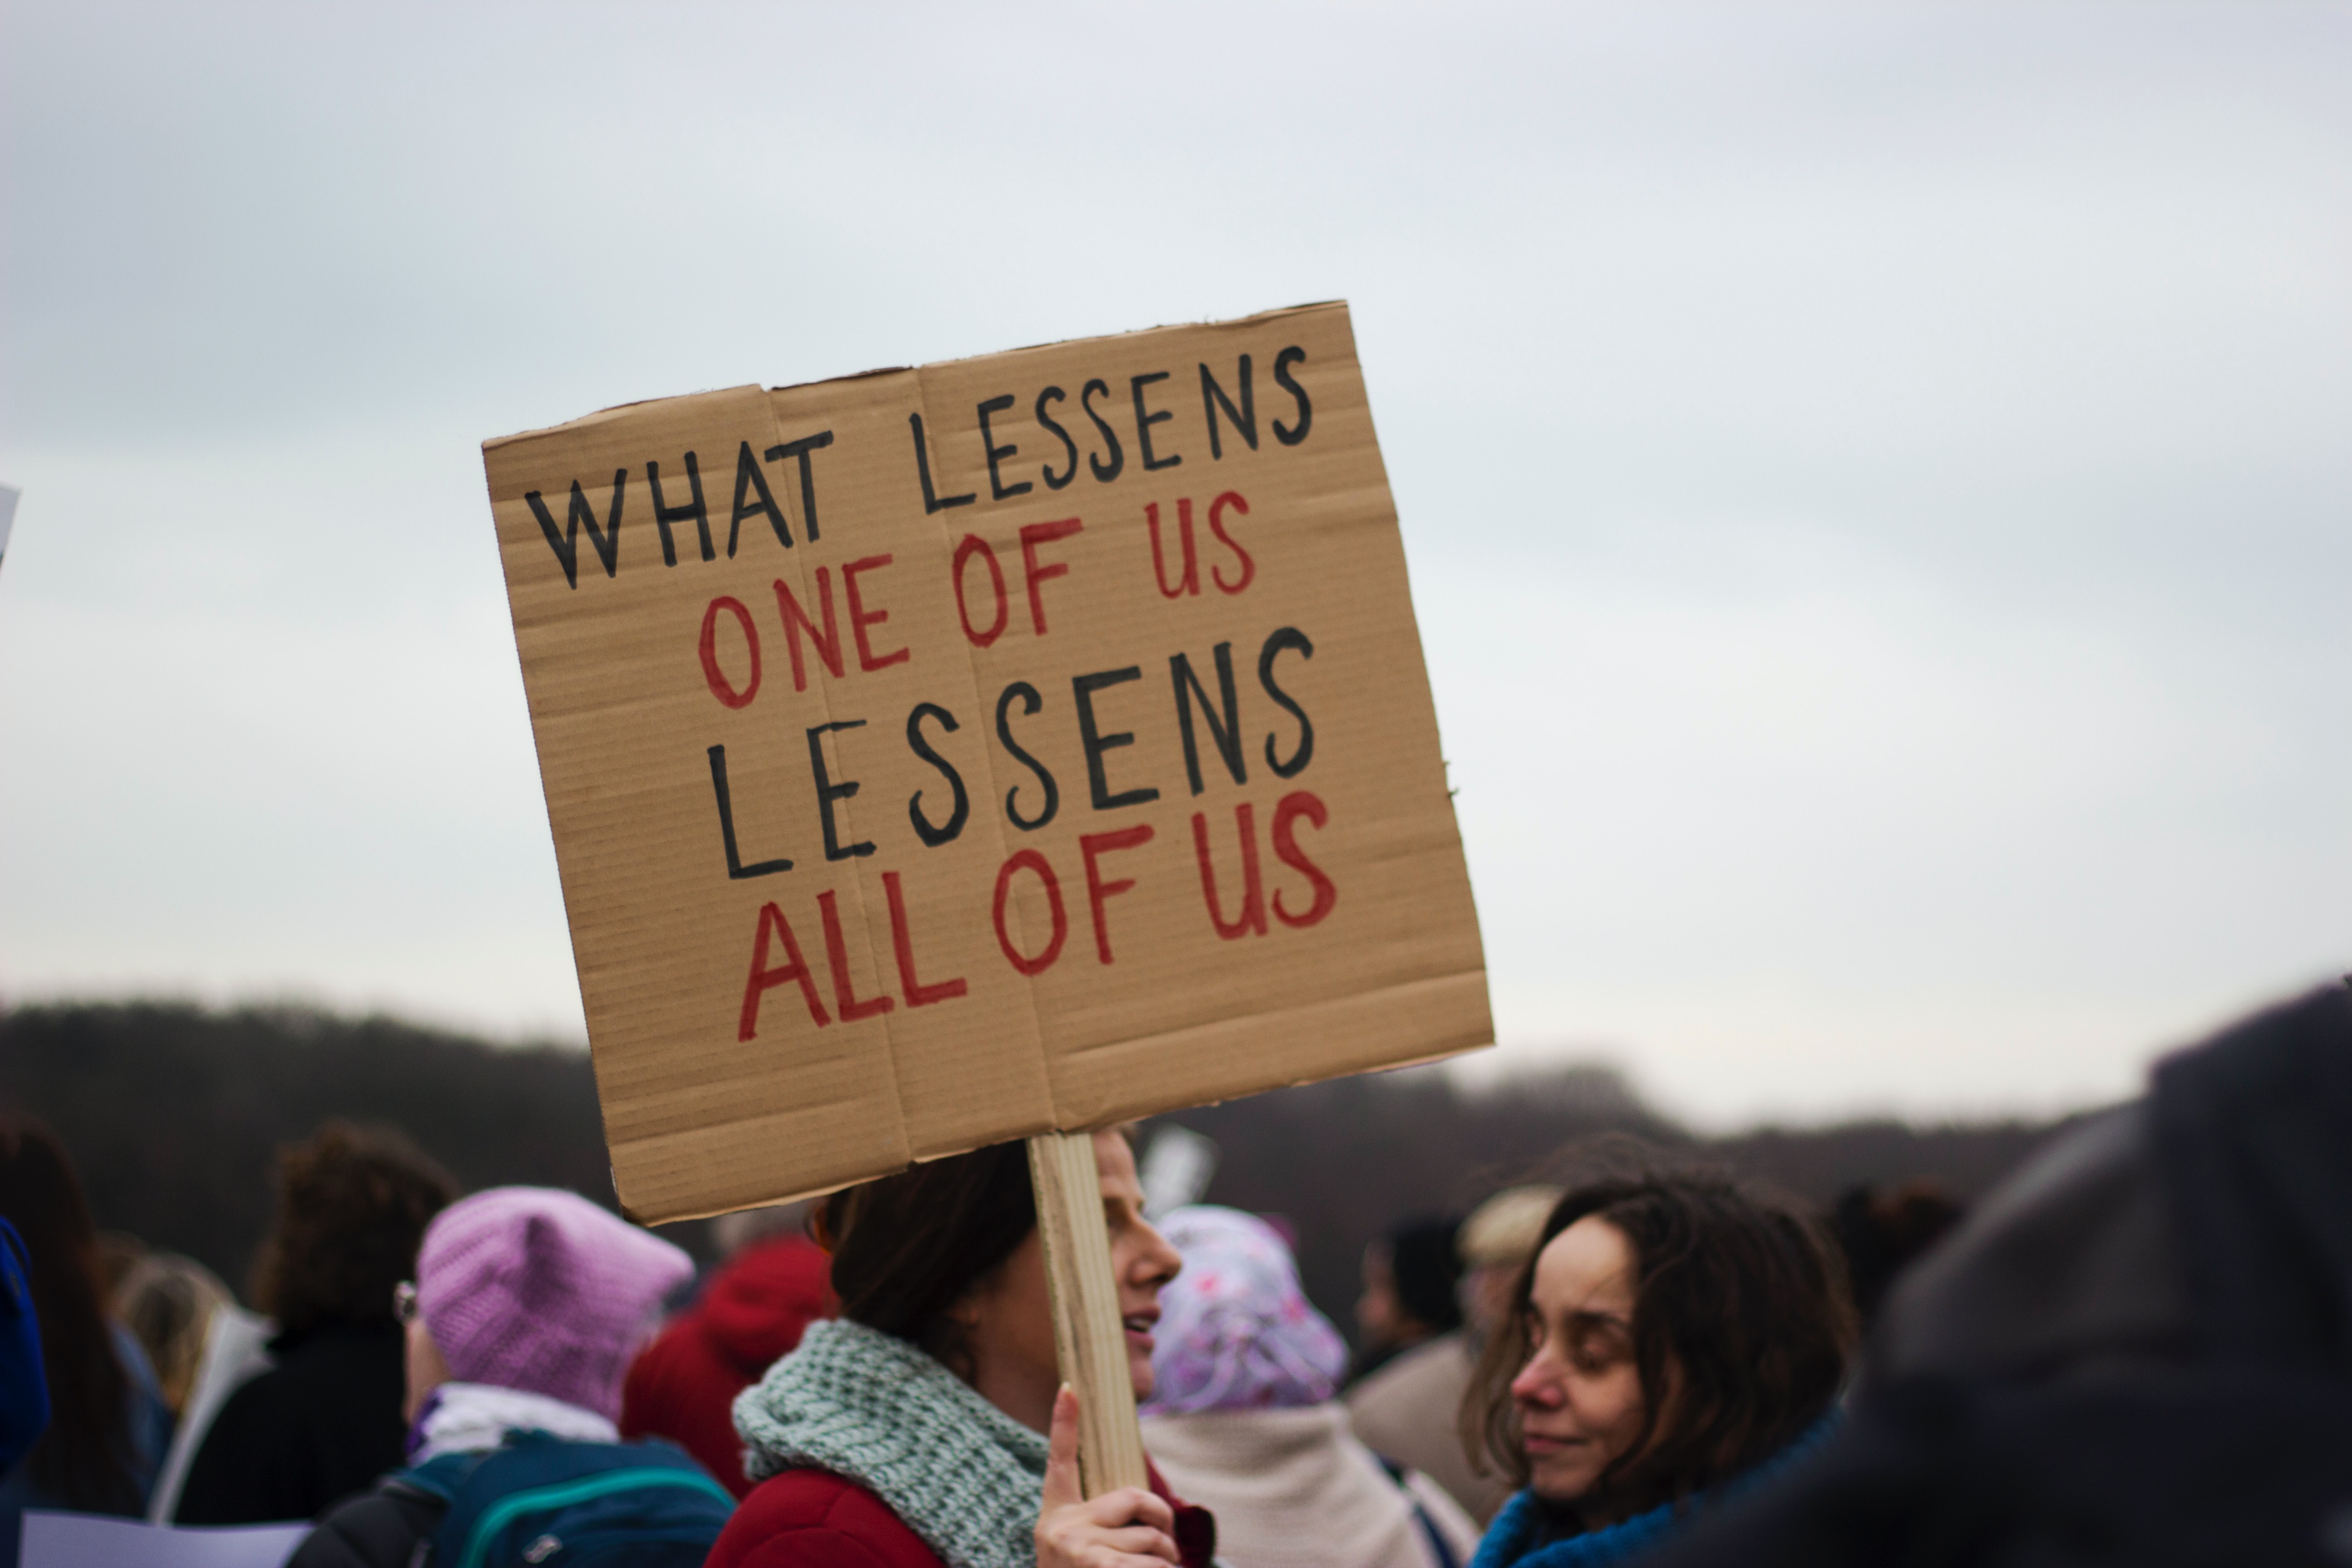 protest sign - what lessens one of us lessens all of us